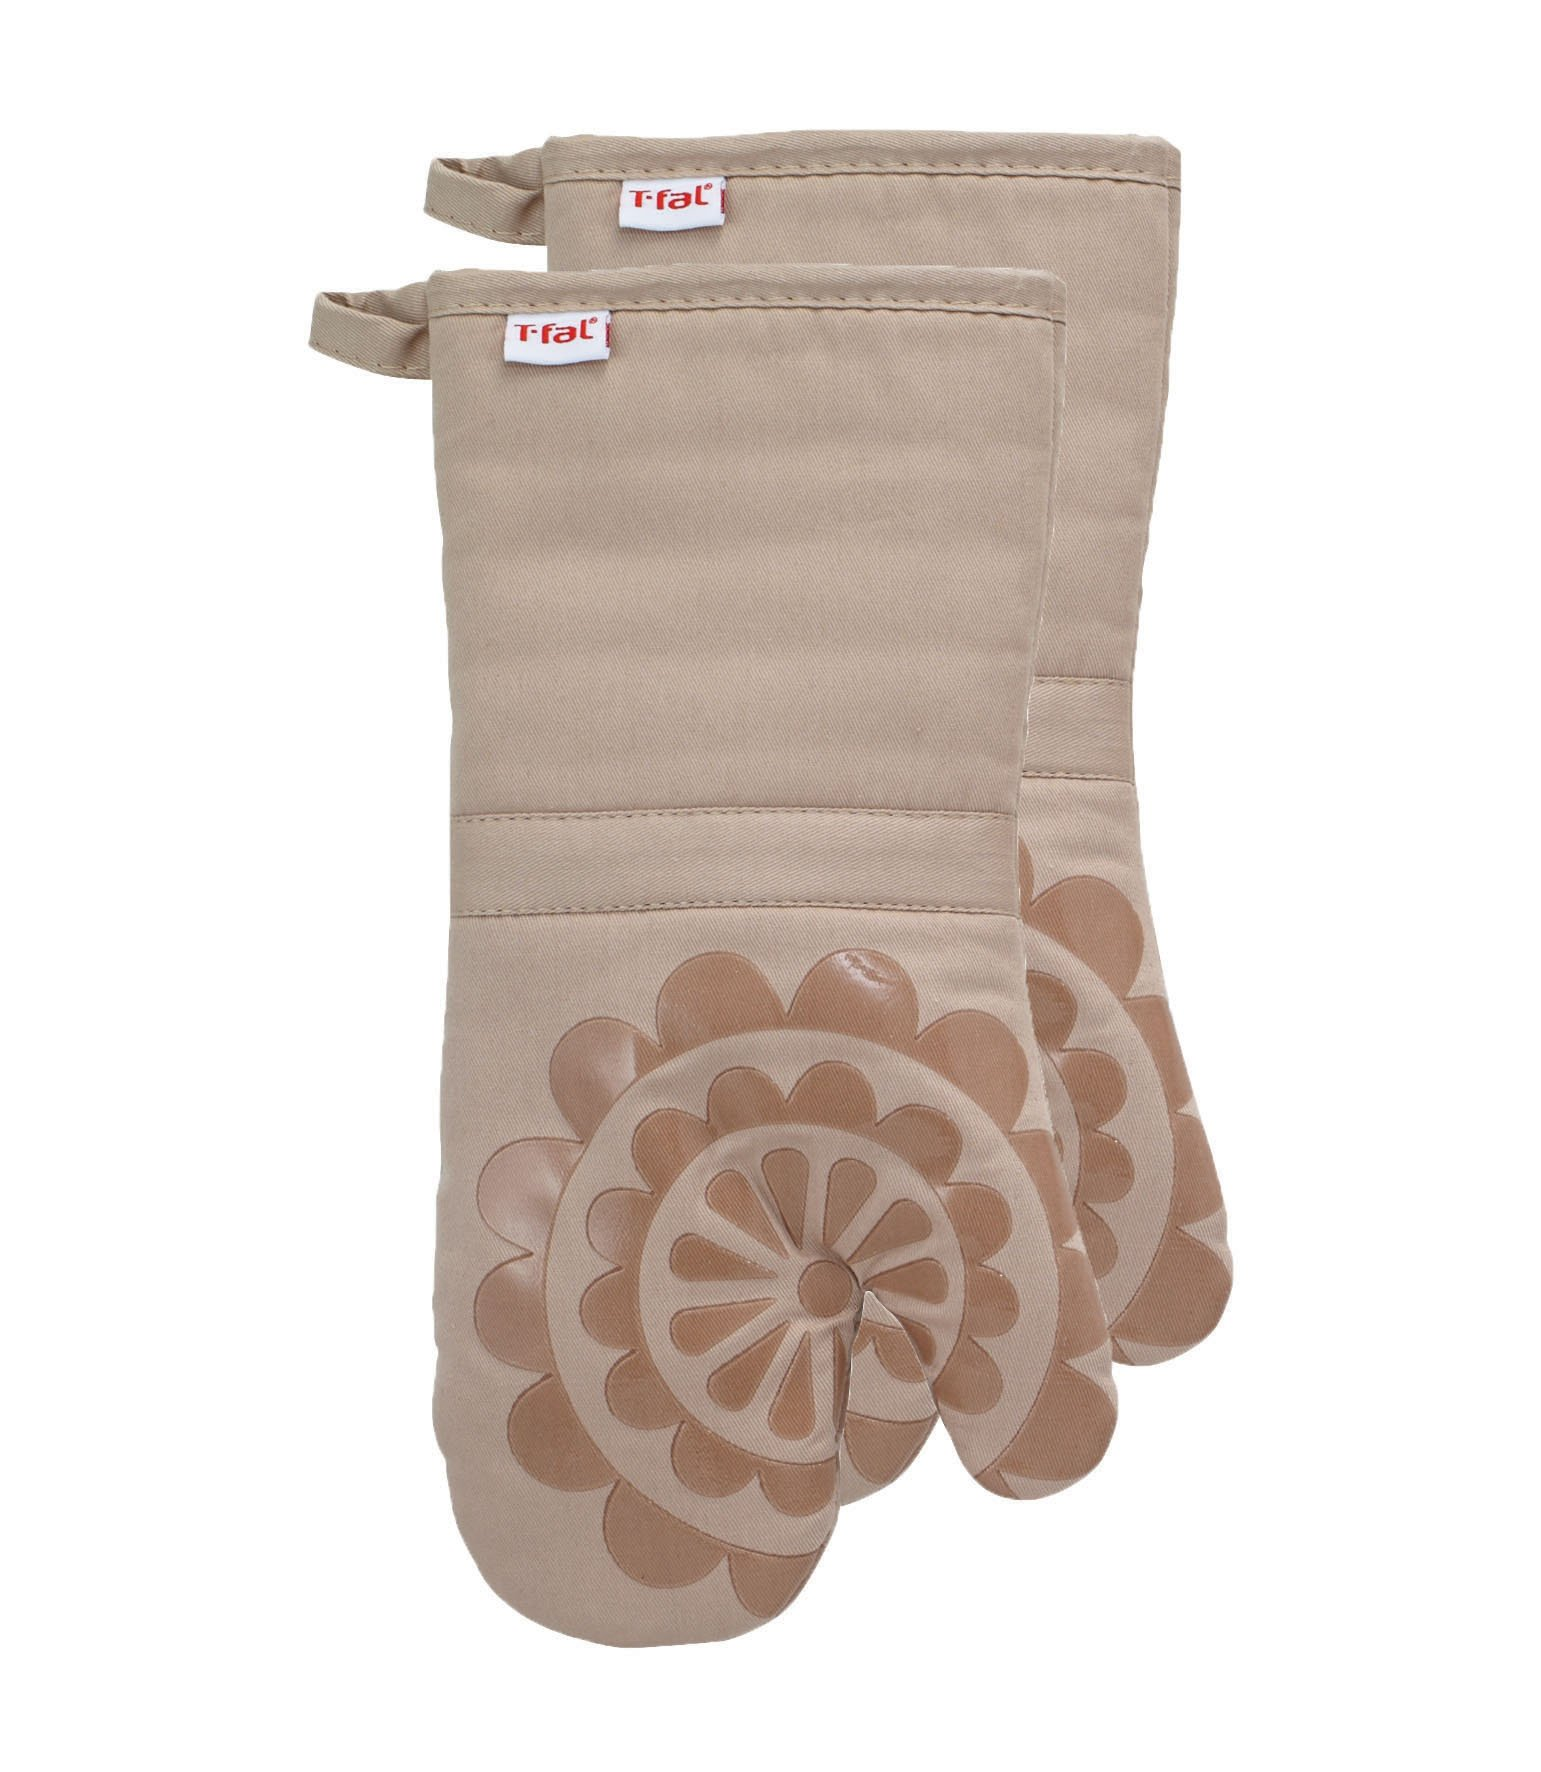 T-fal Textiles 97174 2-Pack Medallion Design 100-Percent Cotton and Silicone Oven Thumb Mitt, Sand, 2 Pack by T-fal Textiles